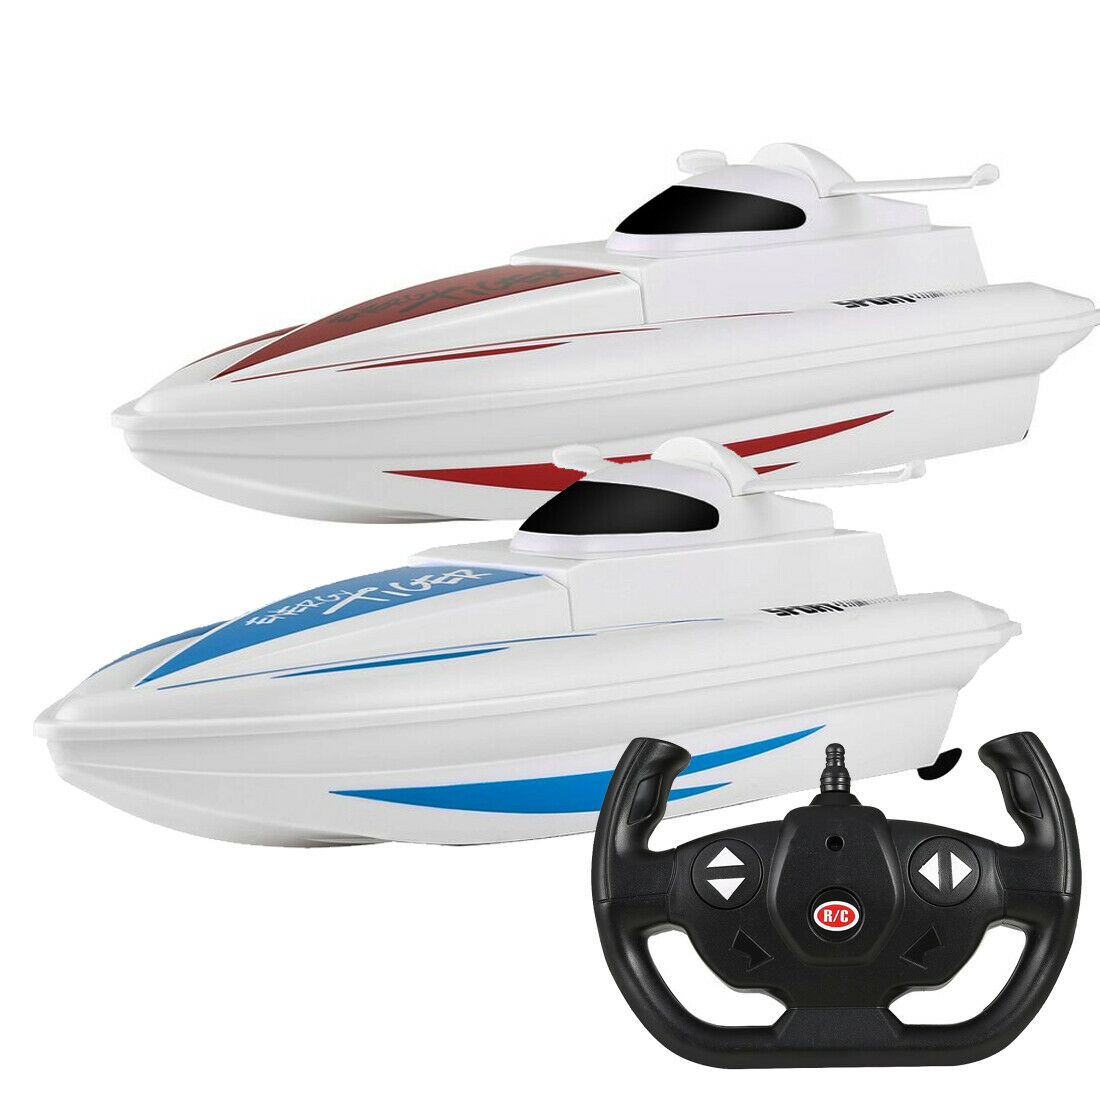 Skytech H101 2.4G Remote Control RC Boat High Speed Racing Boats RTR Pool Toy UK